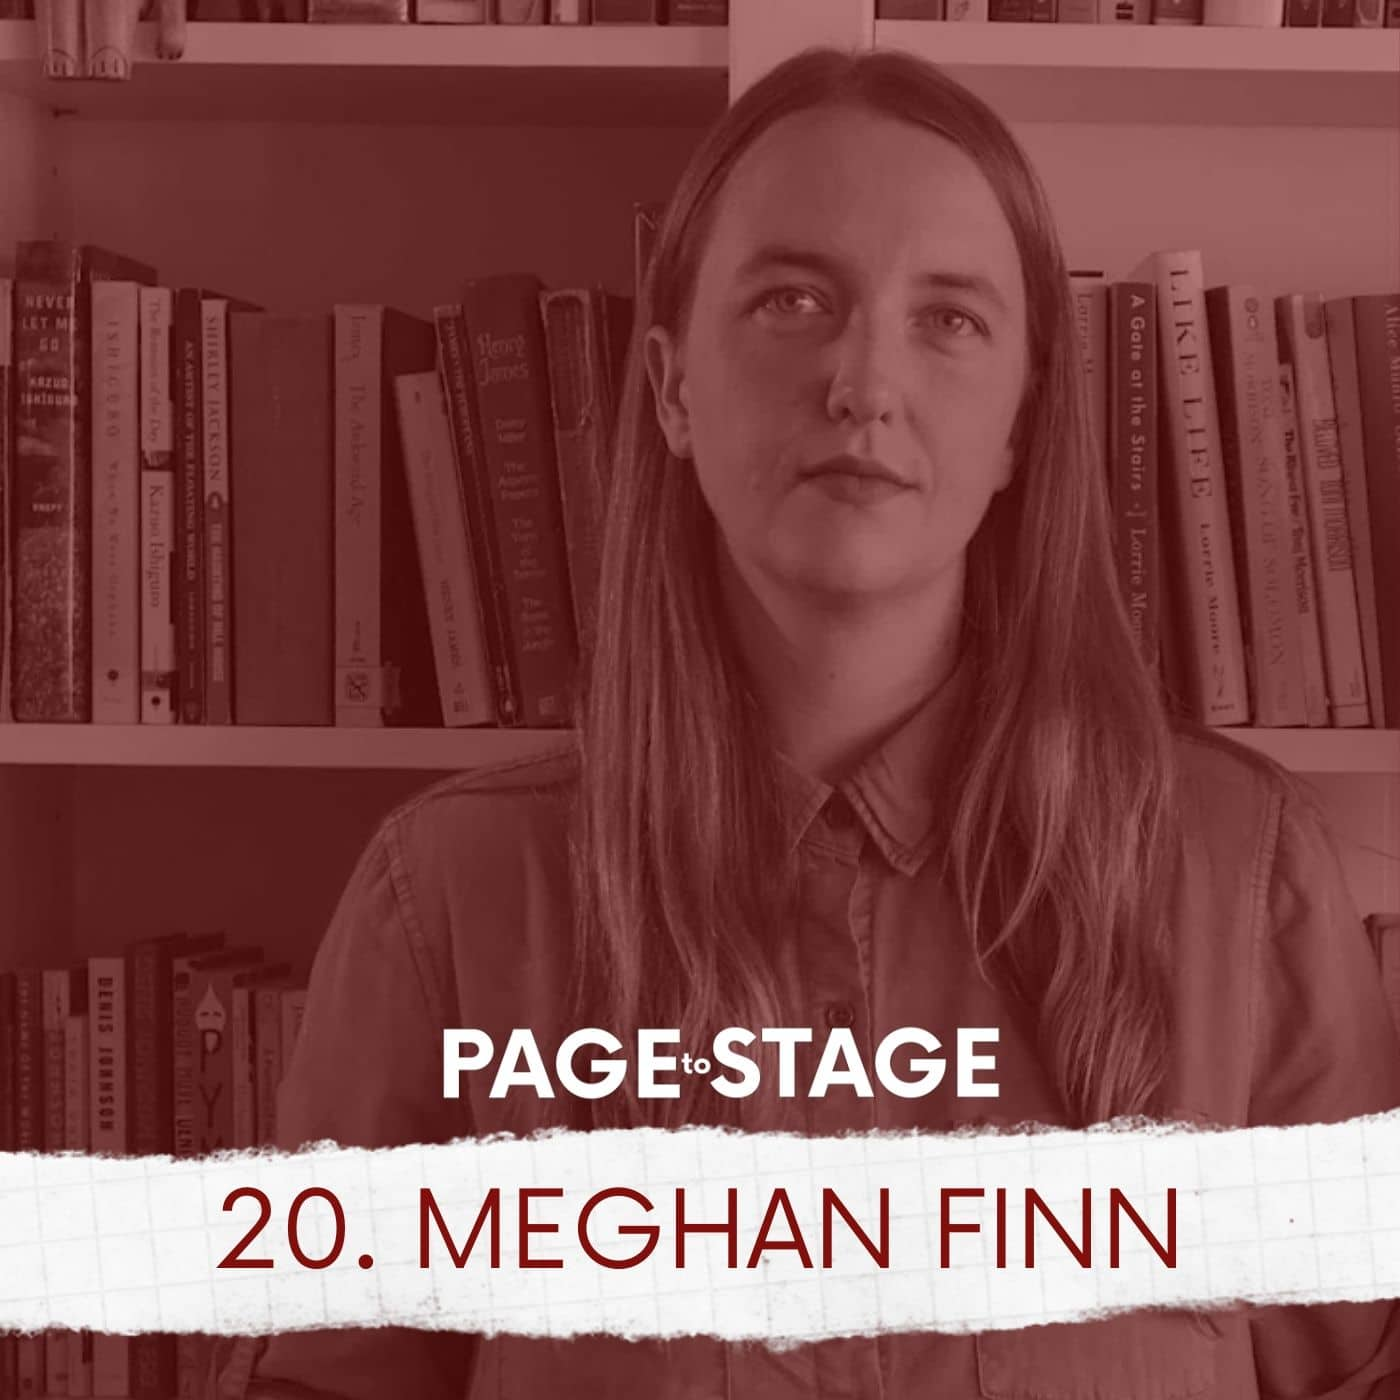 Page To Stage Episode 20 Meghan Finn